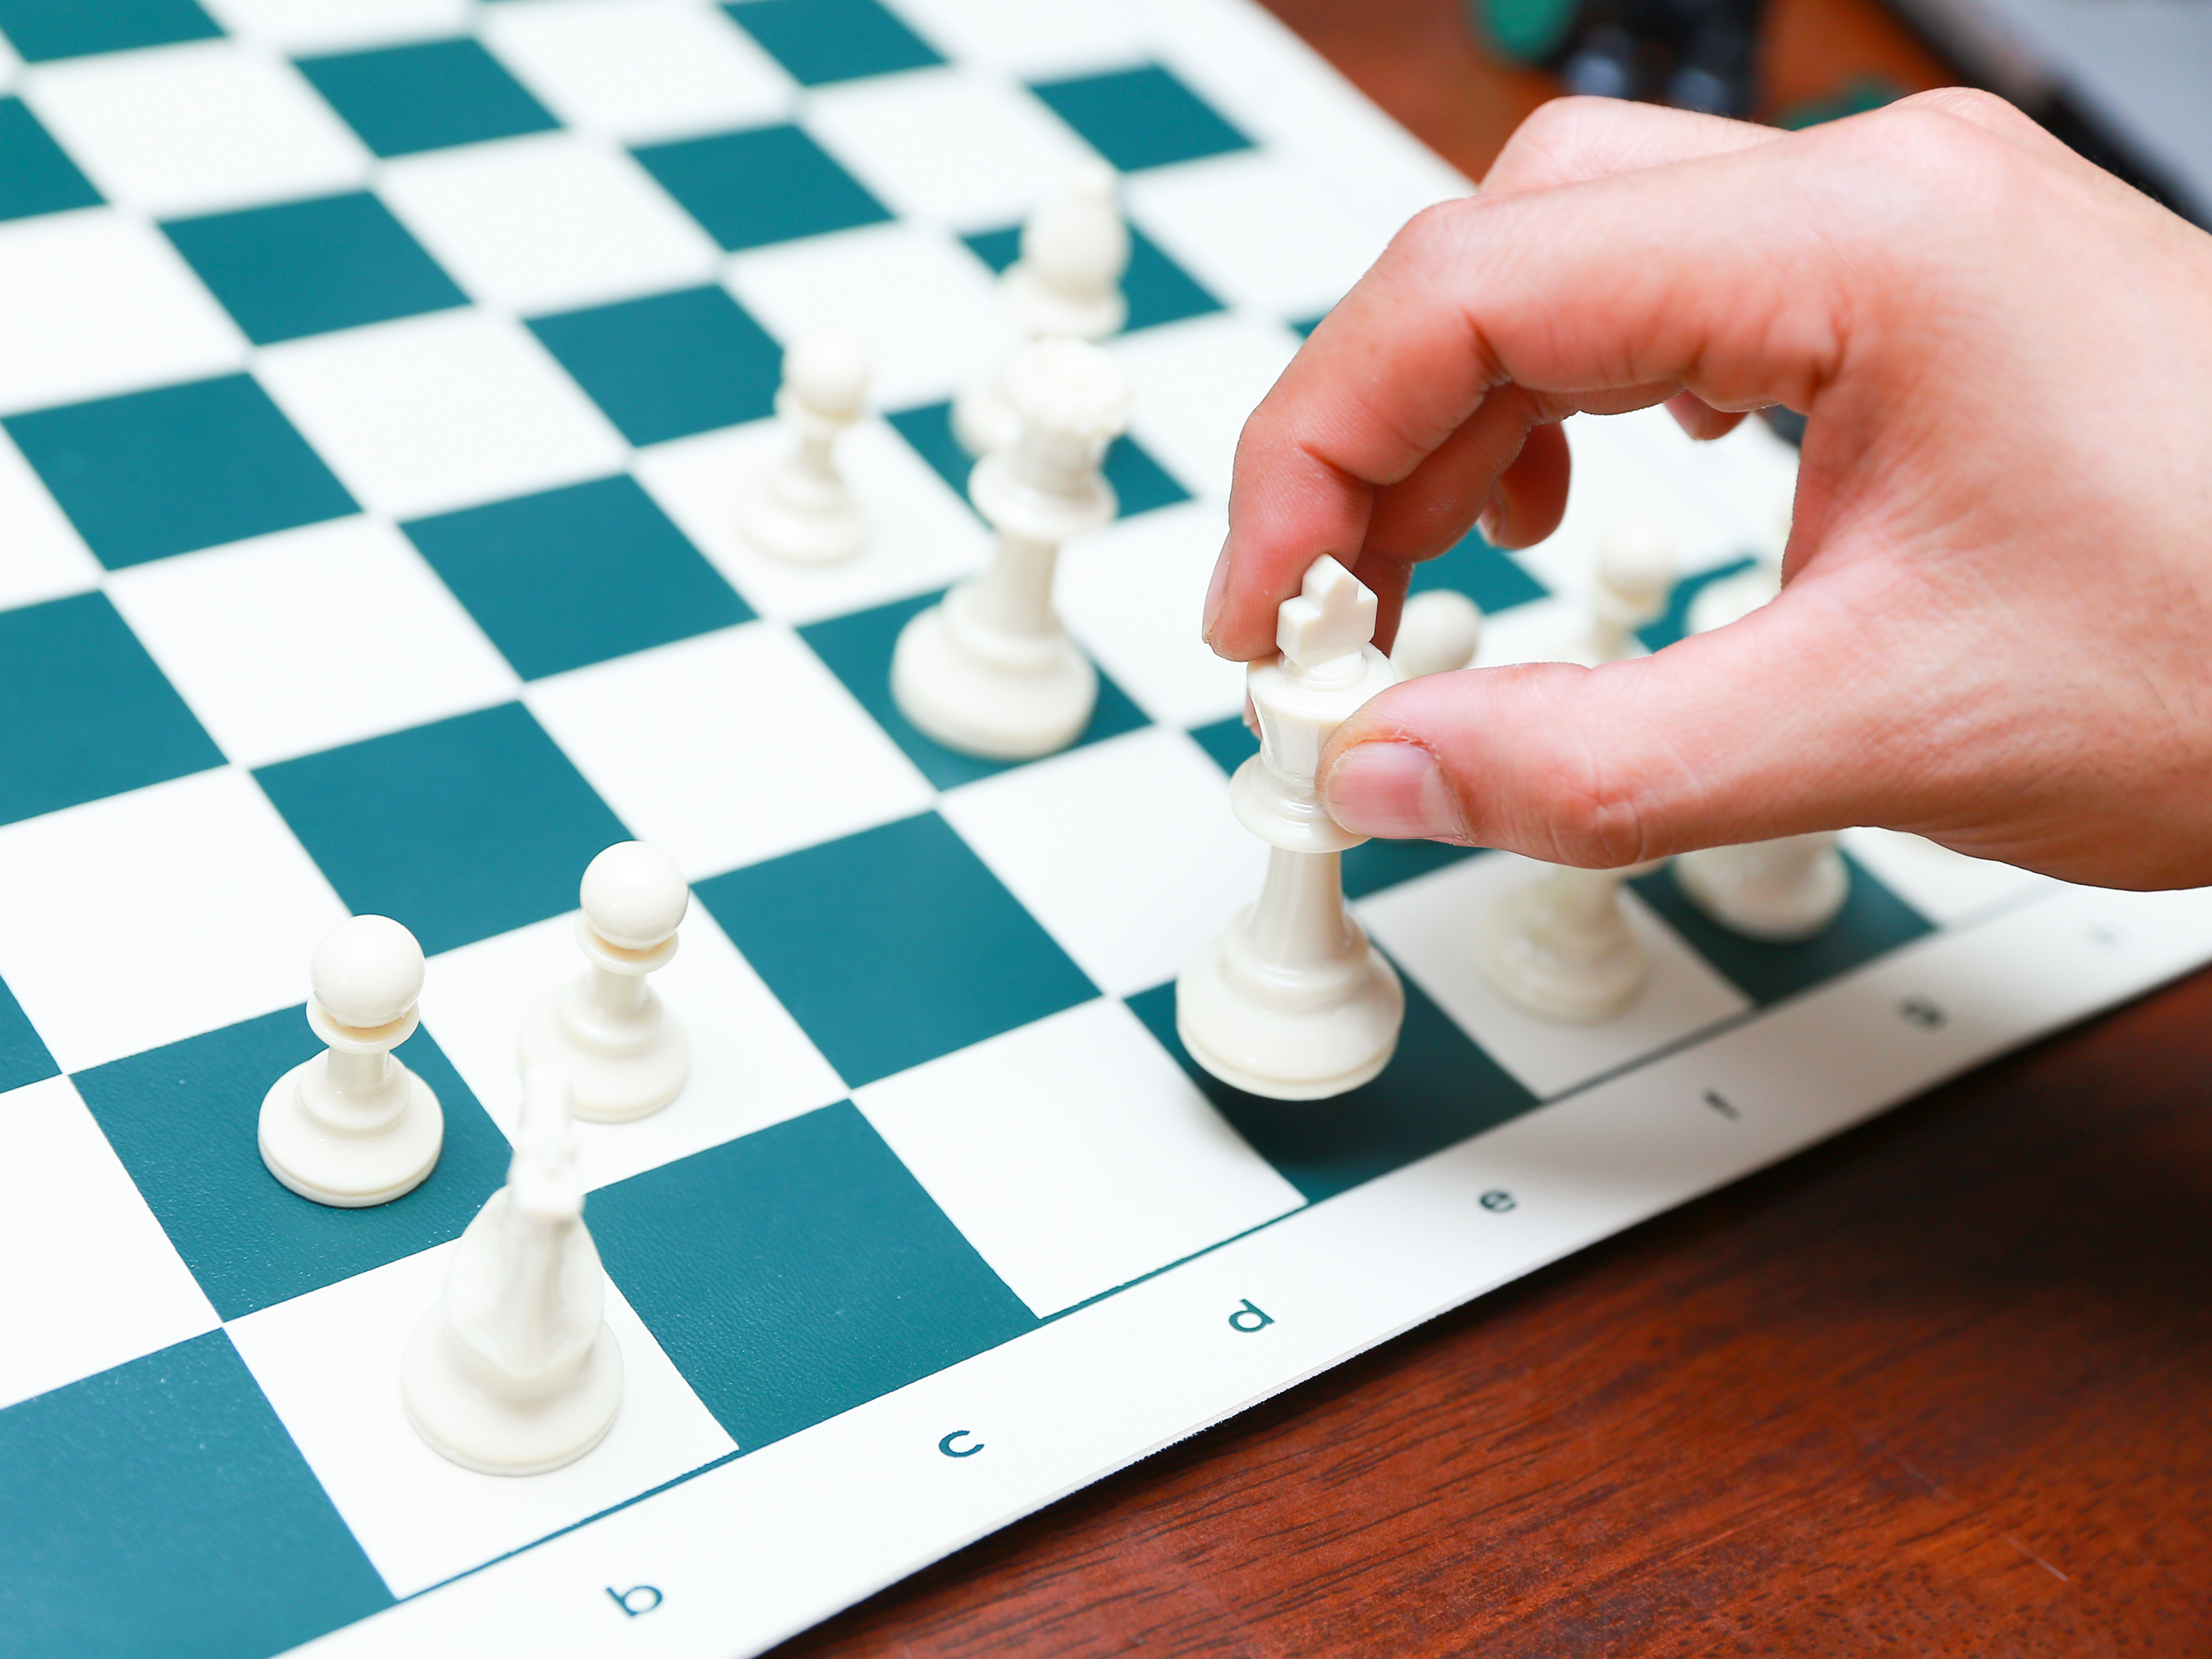 chess board setup diagram 2000 ford explorer cd player wiring the easiest way to set up a chessboard wikihow